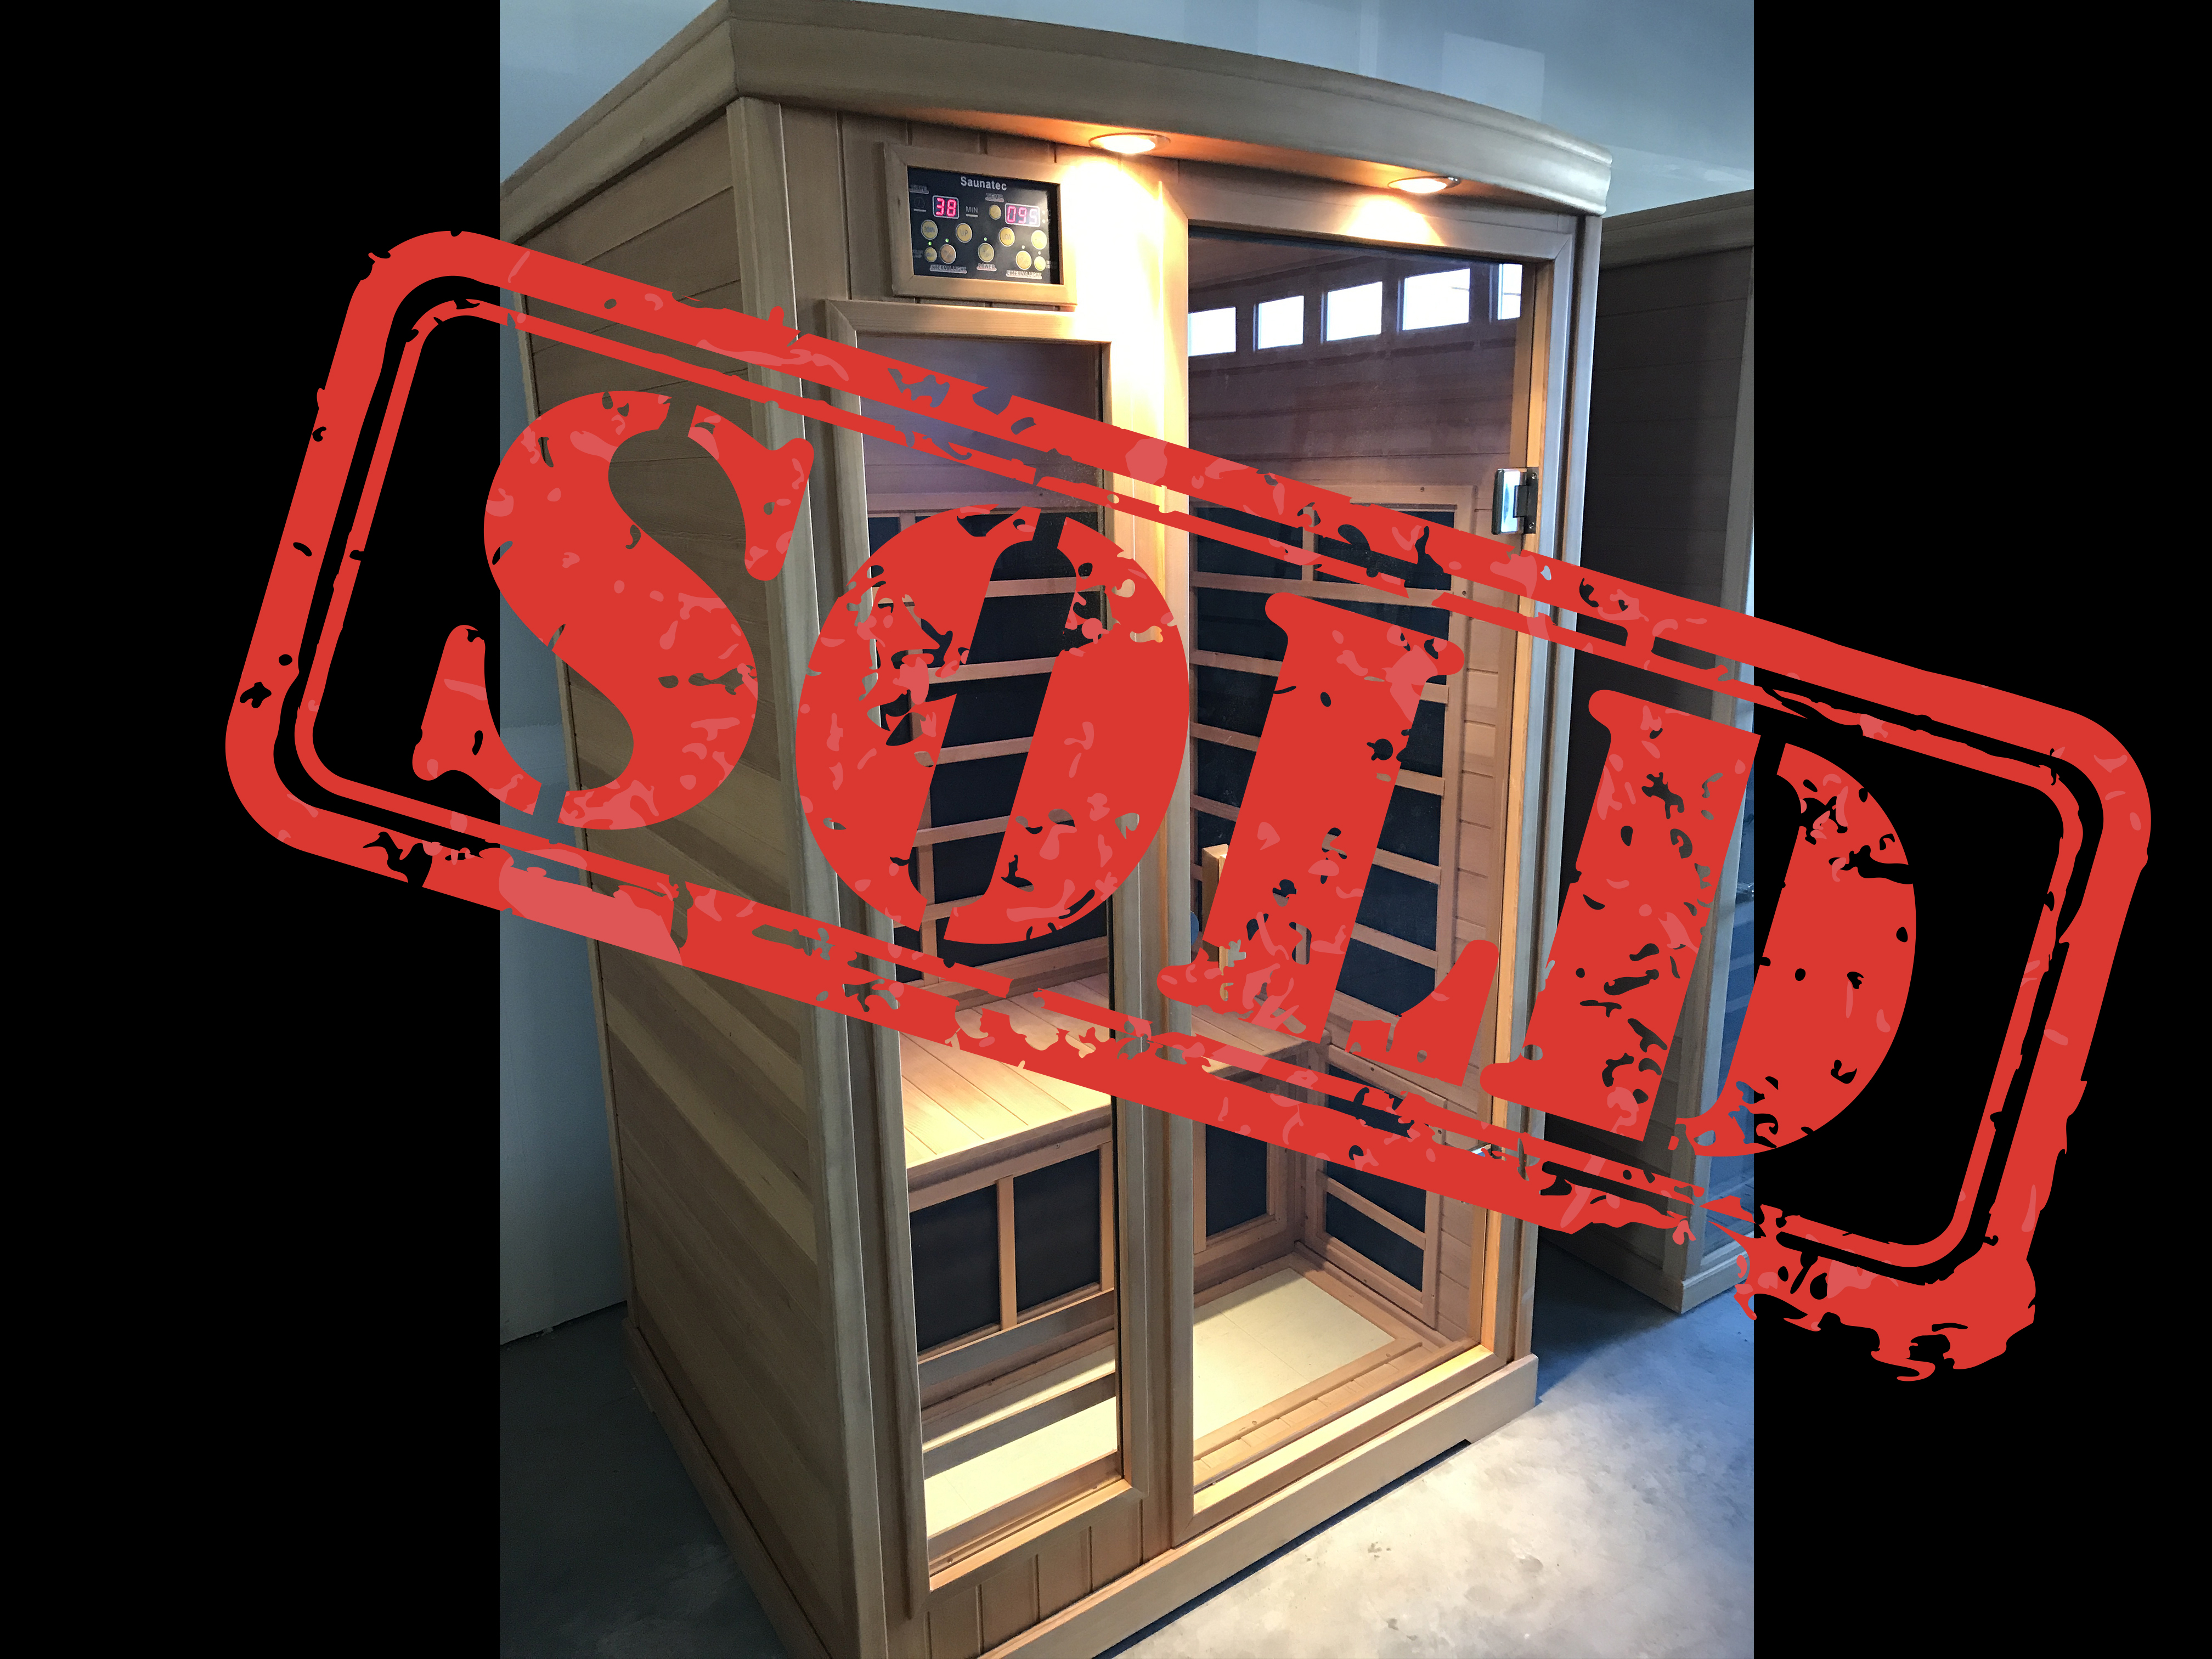 SOLD - B200 Infrared Sauna Room Family Image